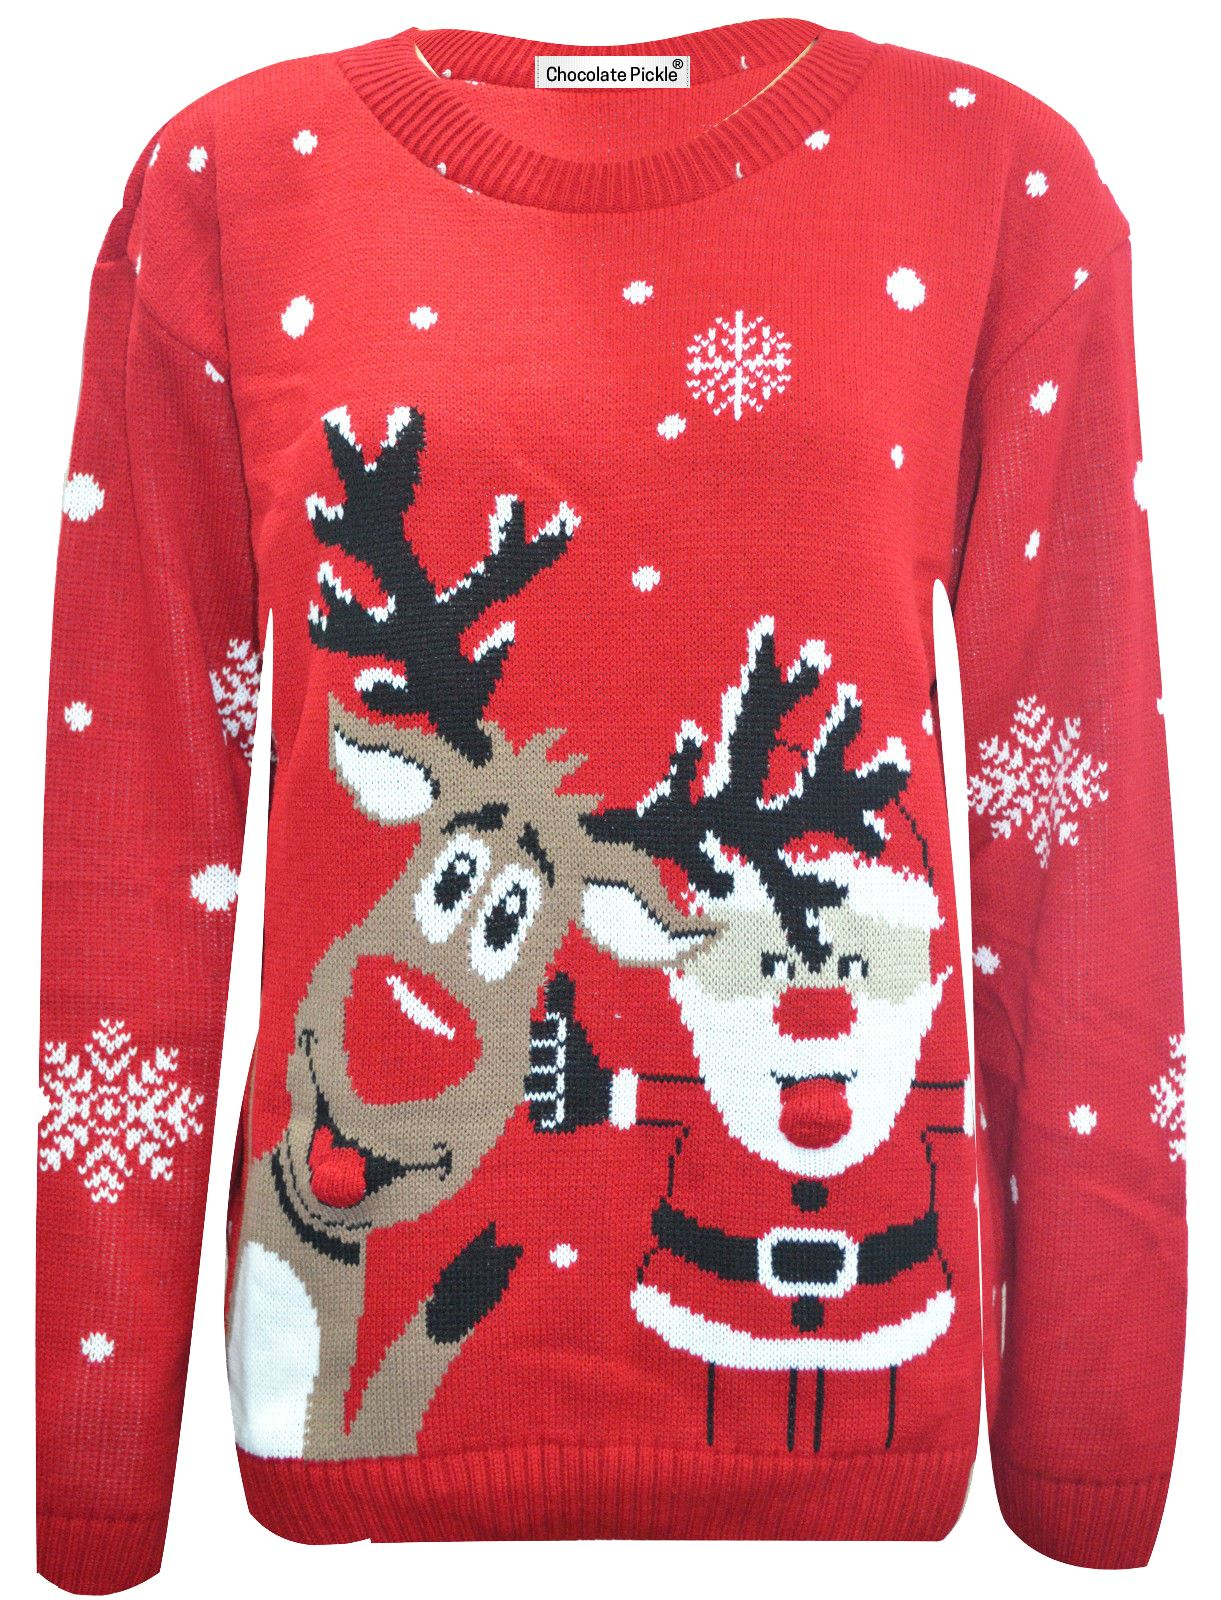 Get in the holiday spirit with this adorable Christmas jumper! The cute Rudolph design is finished with a 3D pom pom nose, helping you feel fun and festive in an instant. Perfect for Christmas Jumper .